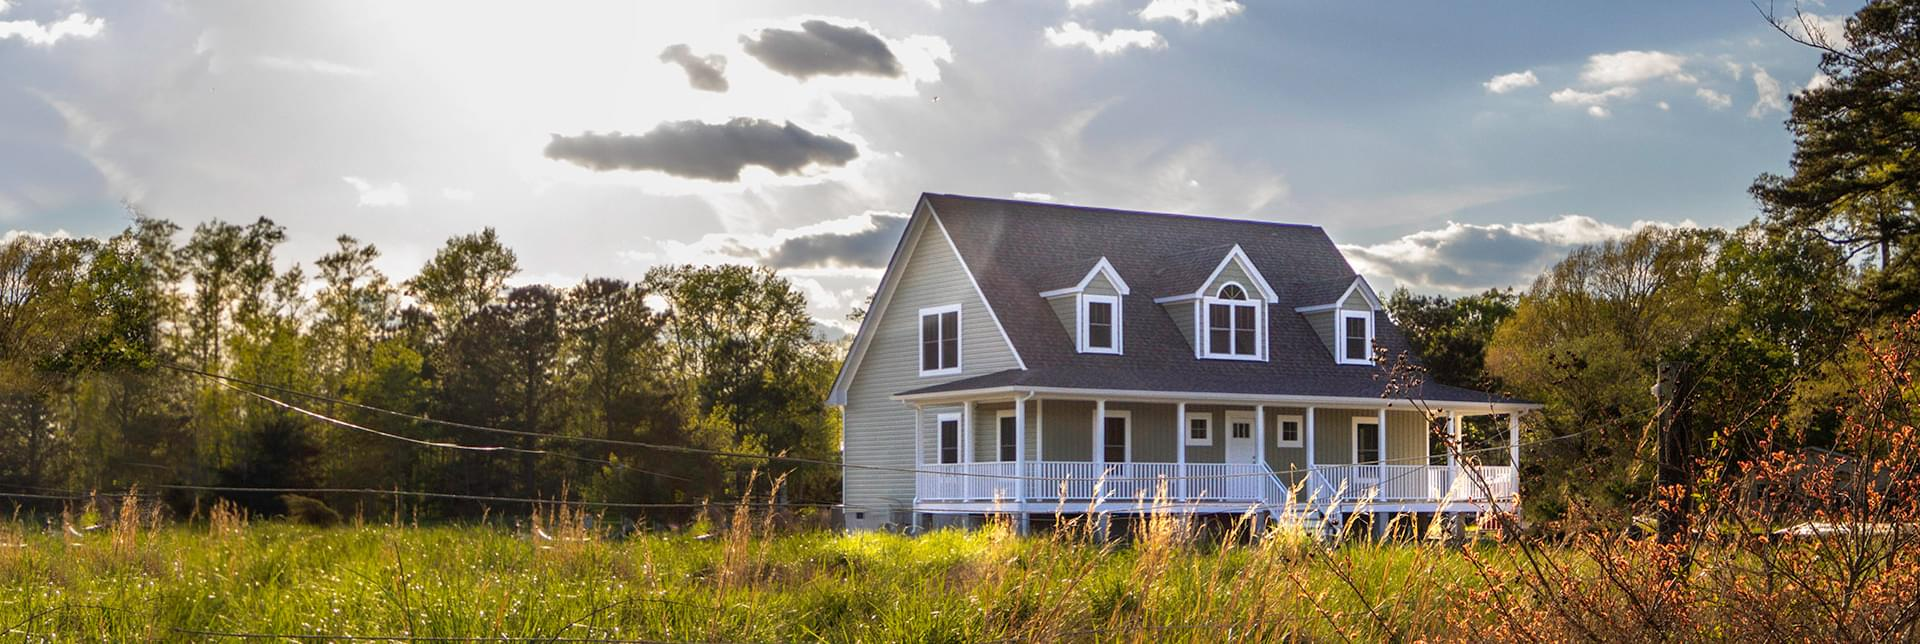 New Homes in Middlesex County VA